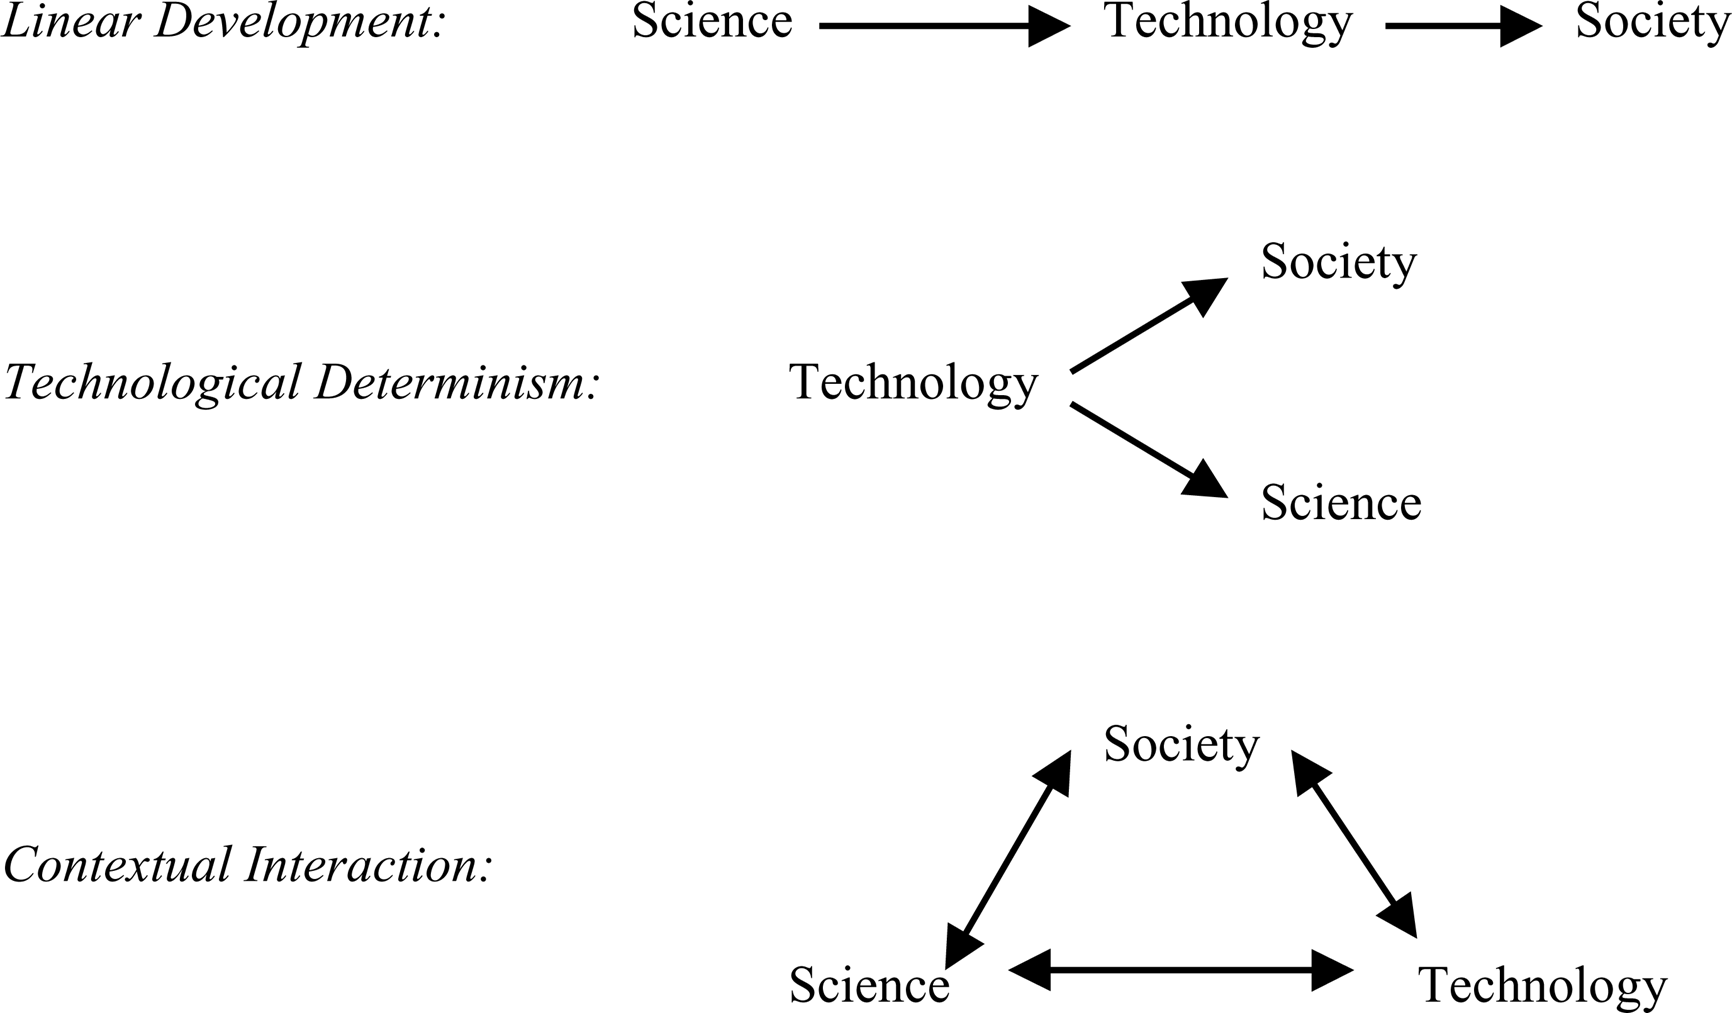 relationship between science and technology essay 11 the deepening relationship between science and technology and society this section proceeds with an analysis of the deepening relationship today between science and.